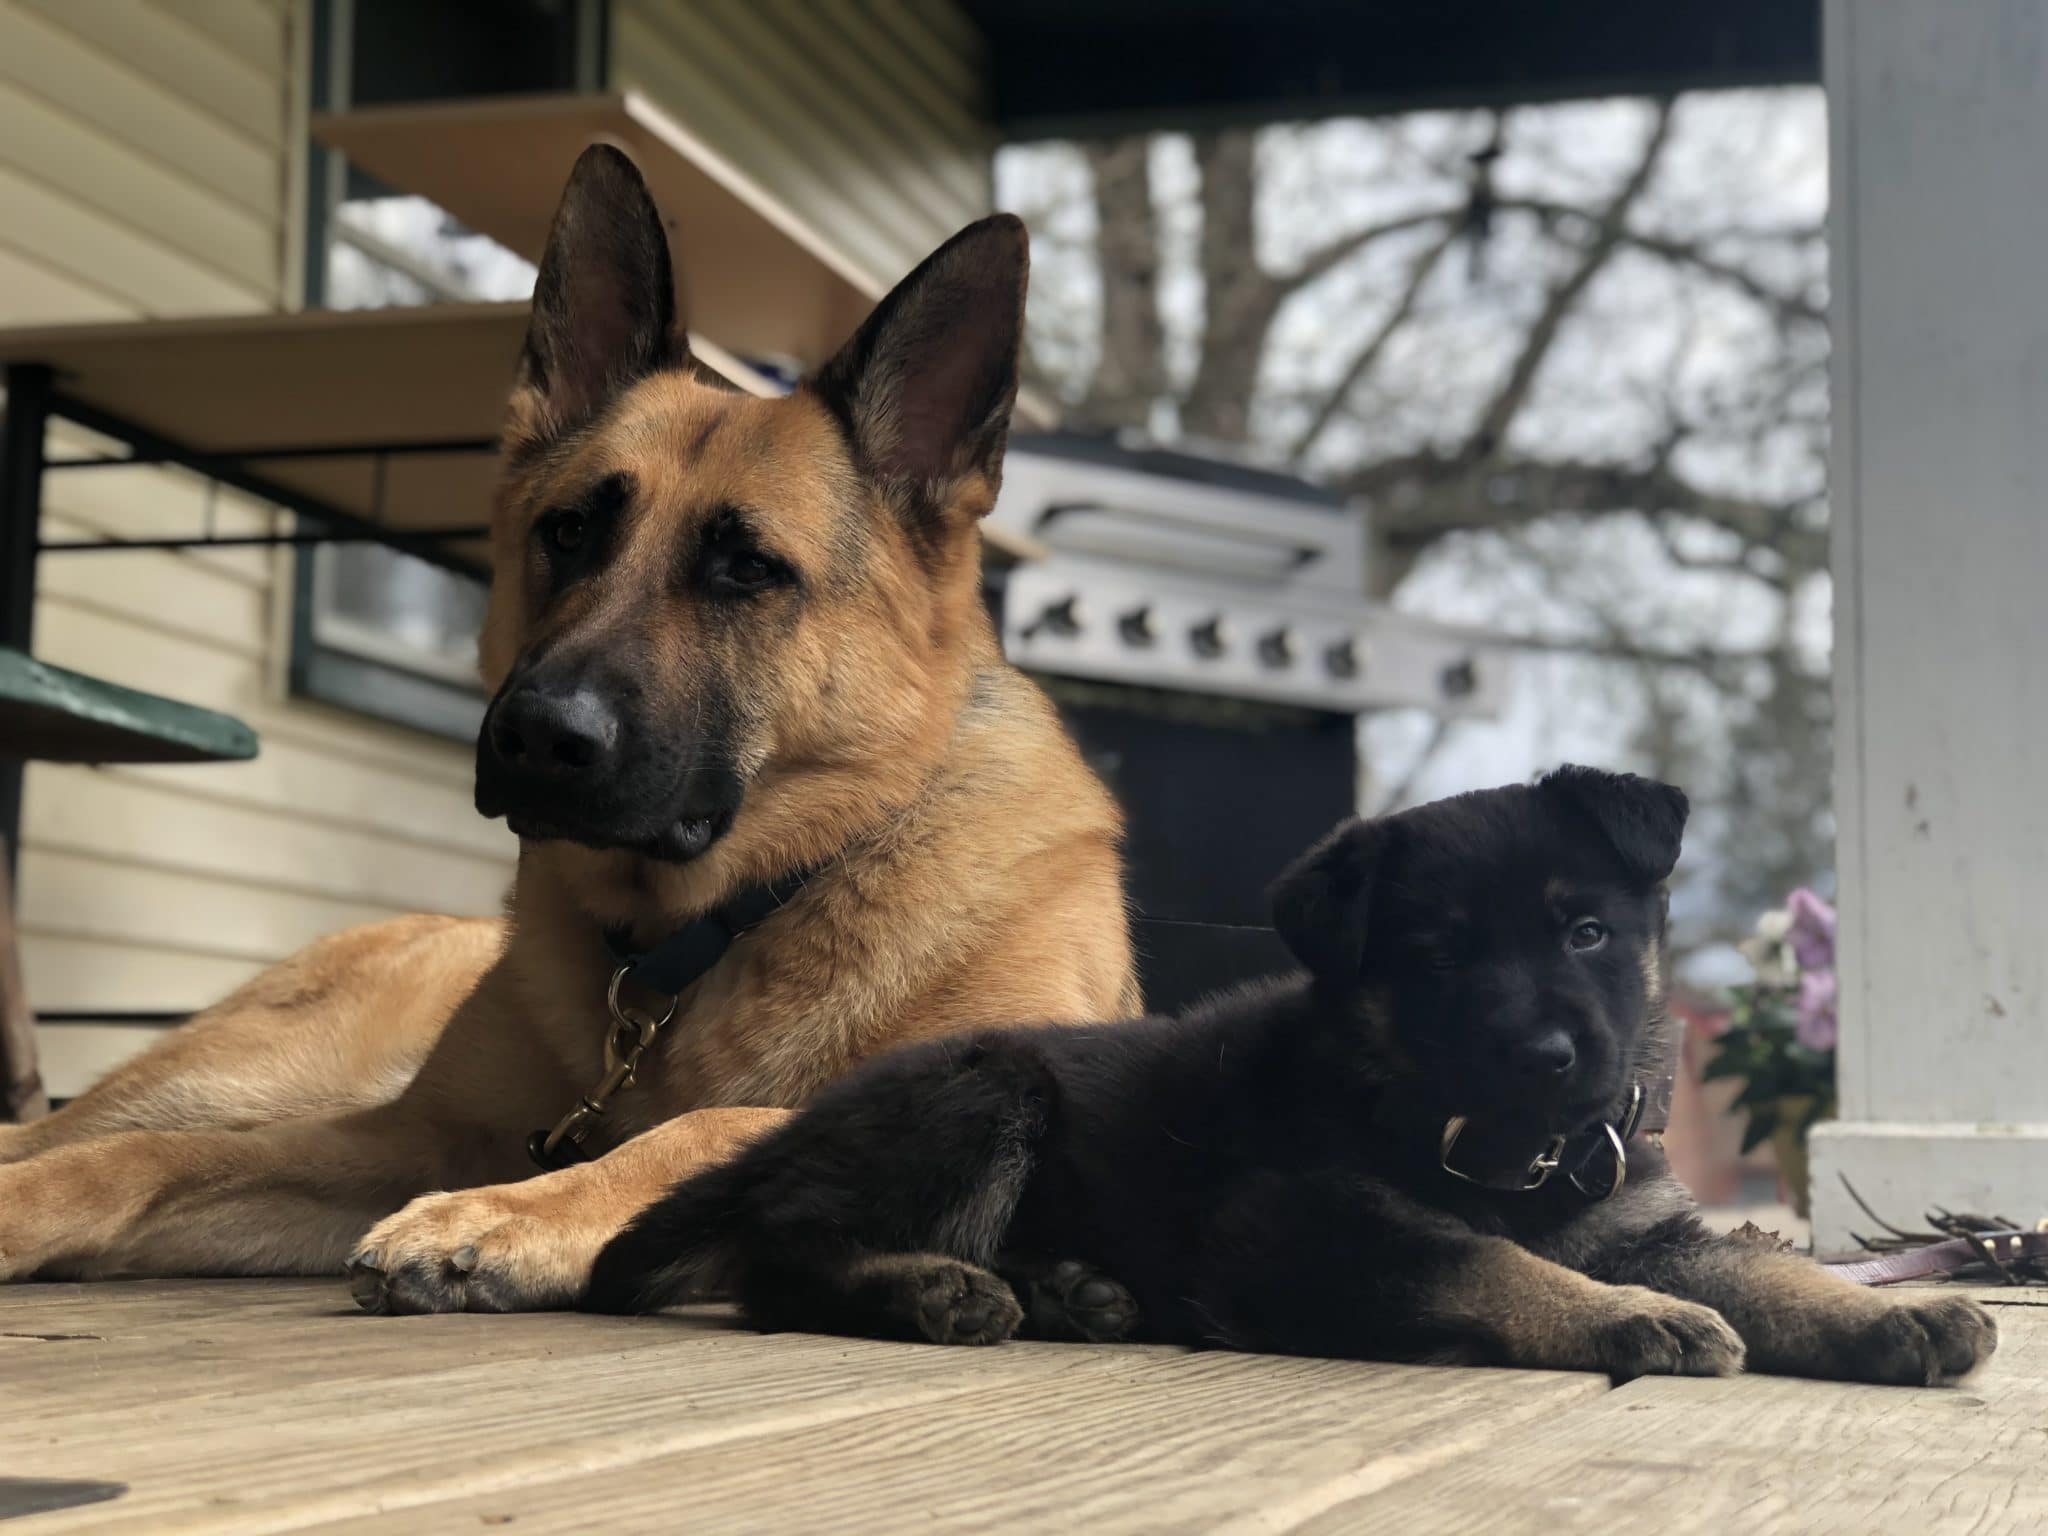 Gypsy and Ike sitting on porch facing camera